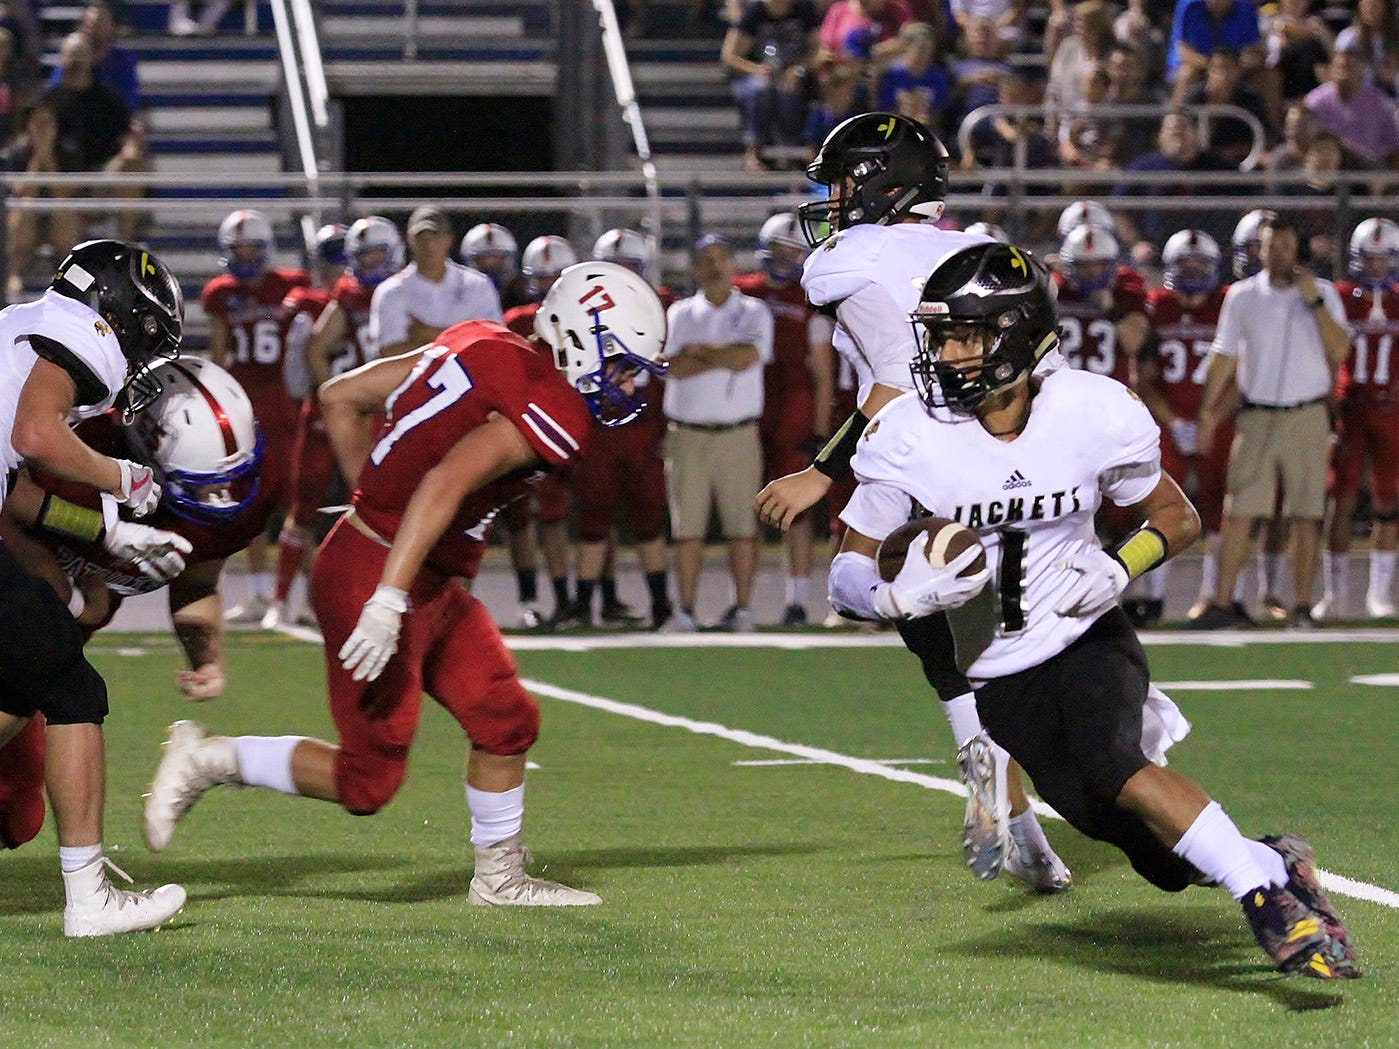 FHS' #1 KamHarris-Lusk races past a Page defender to score a Jacket touchdown August 17, 2018.